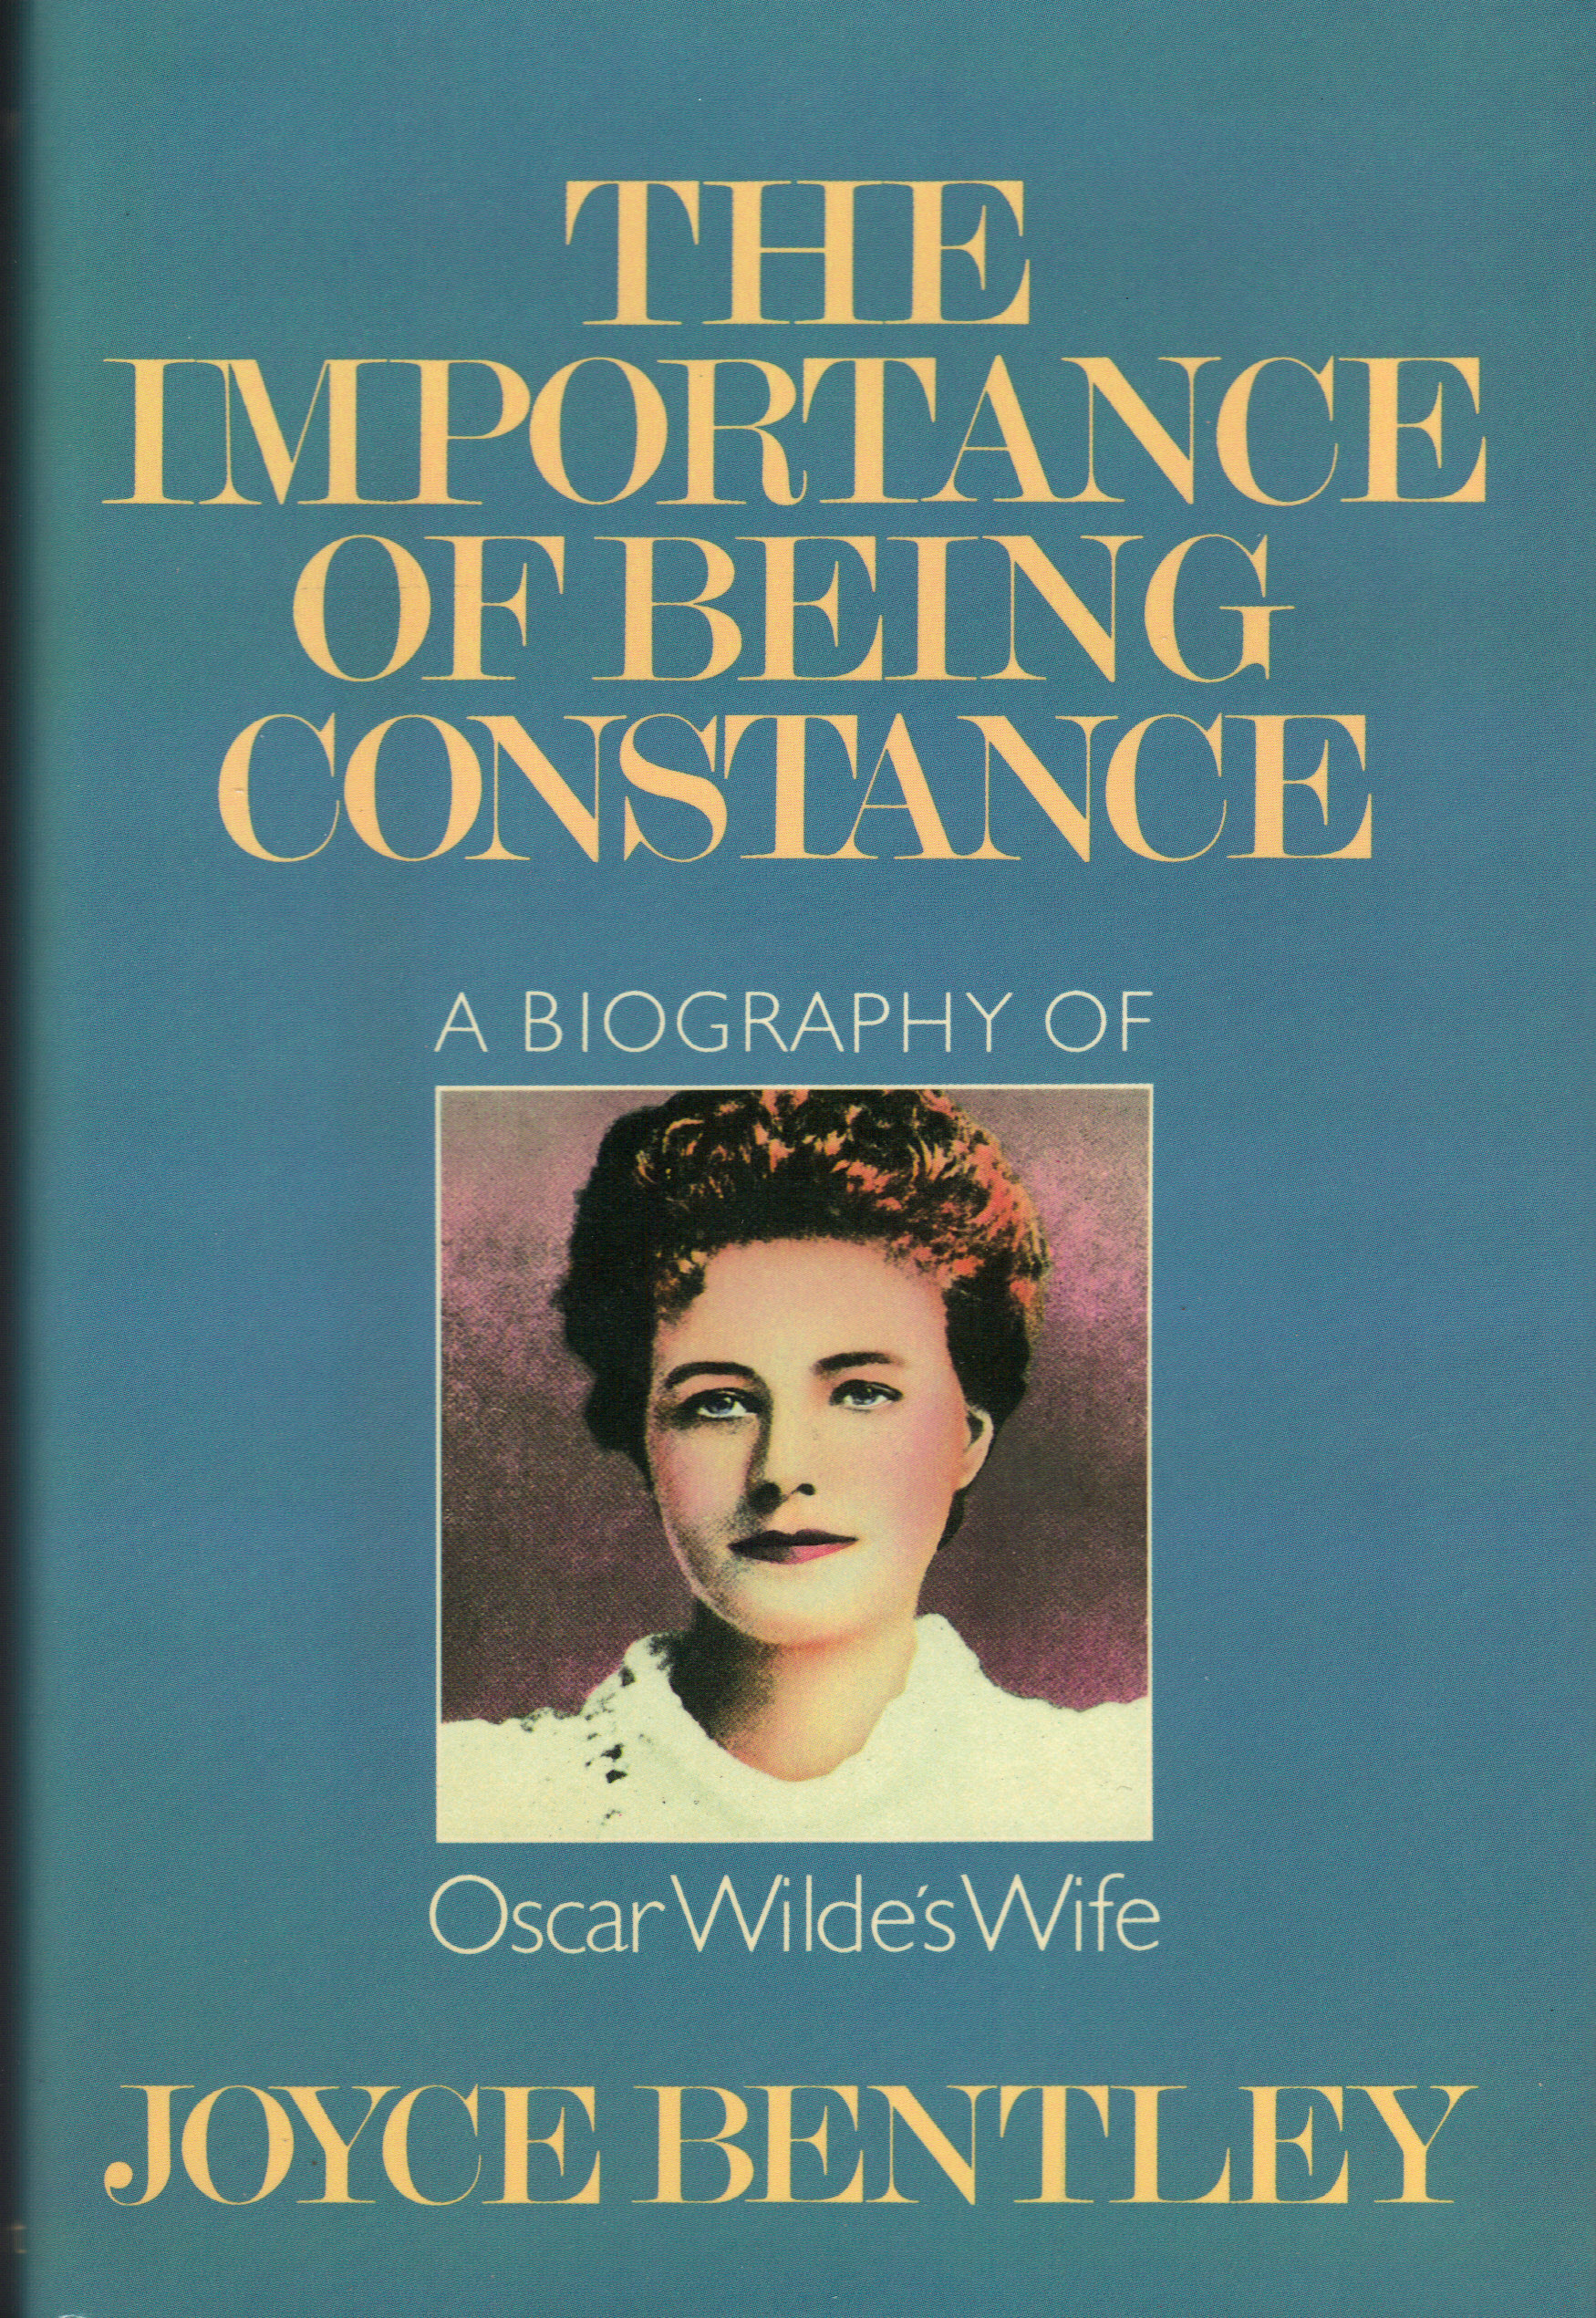 Image for THE IMPORTANCE OF BEING CONSTANCE ~ A Biography of Oscar Wilde's Wife